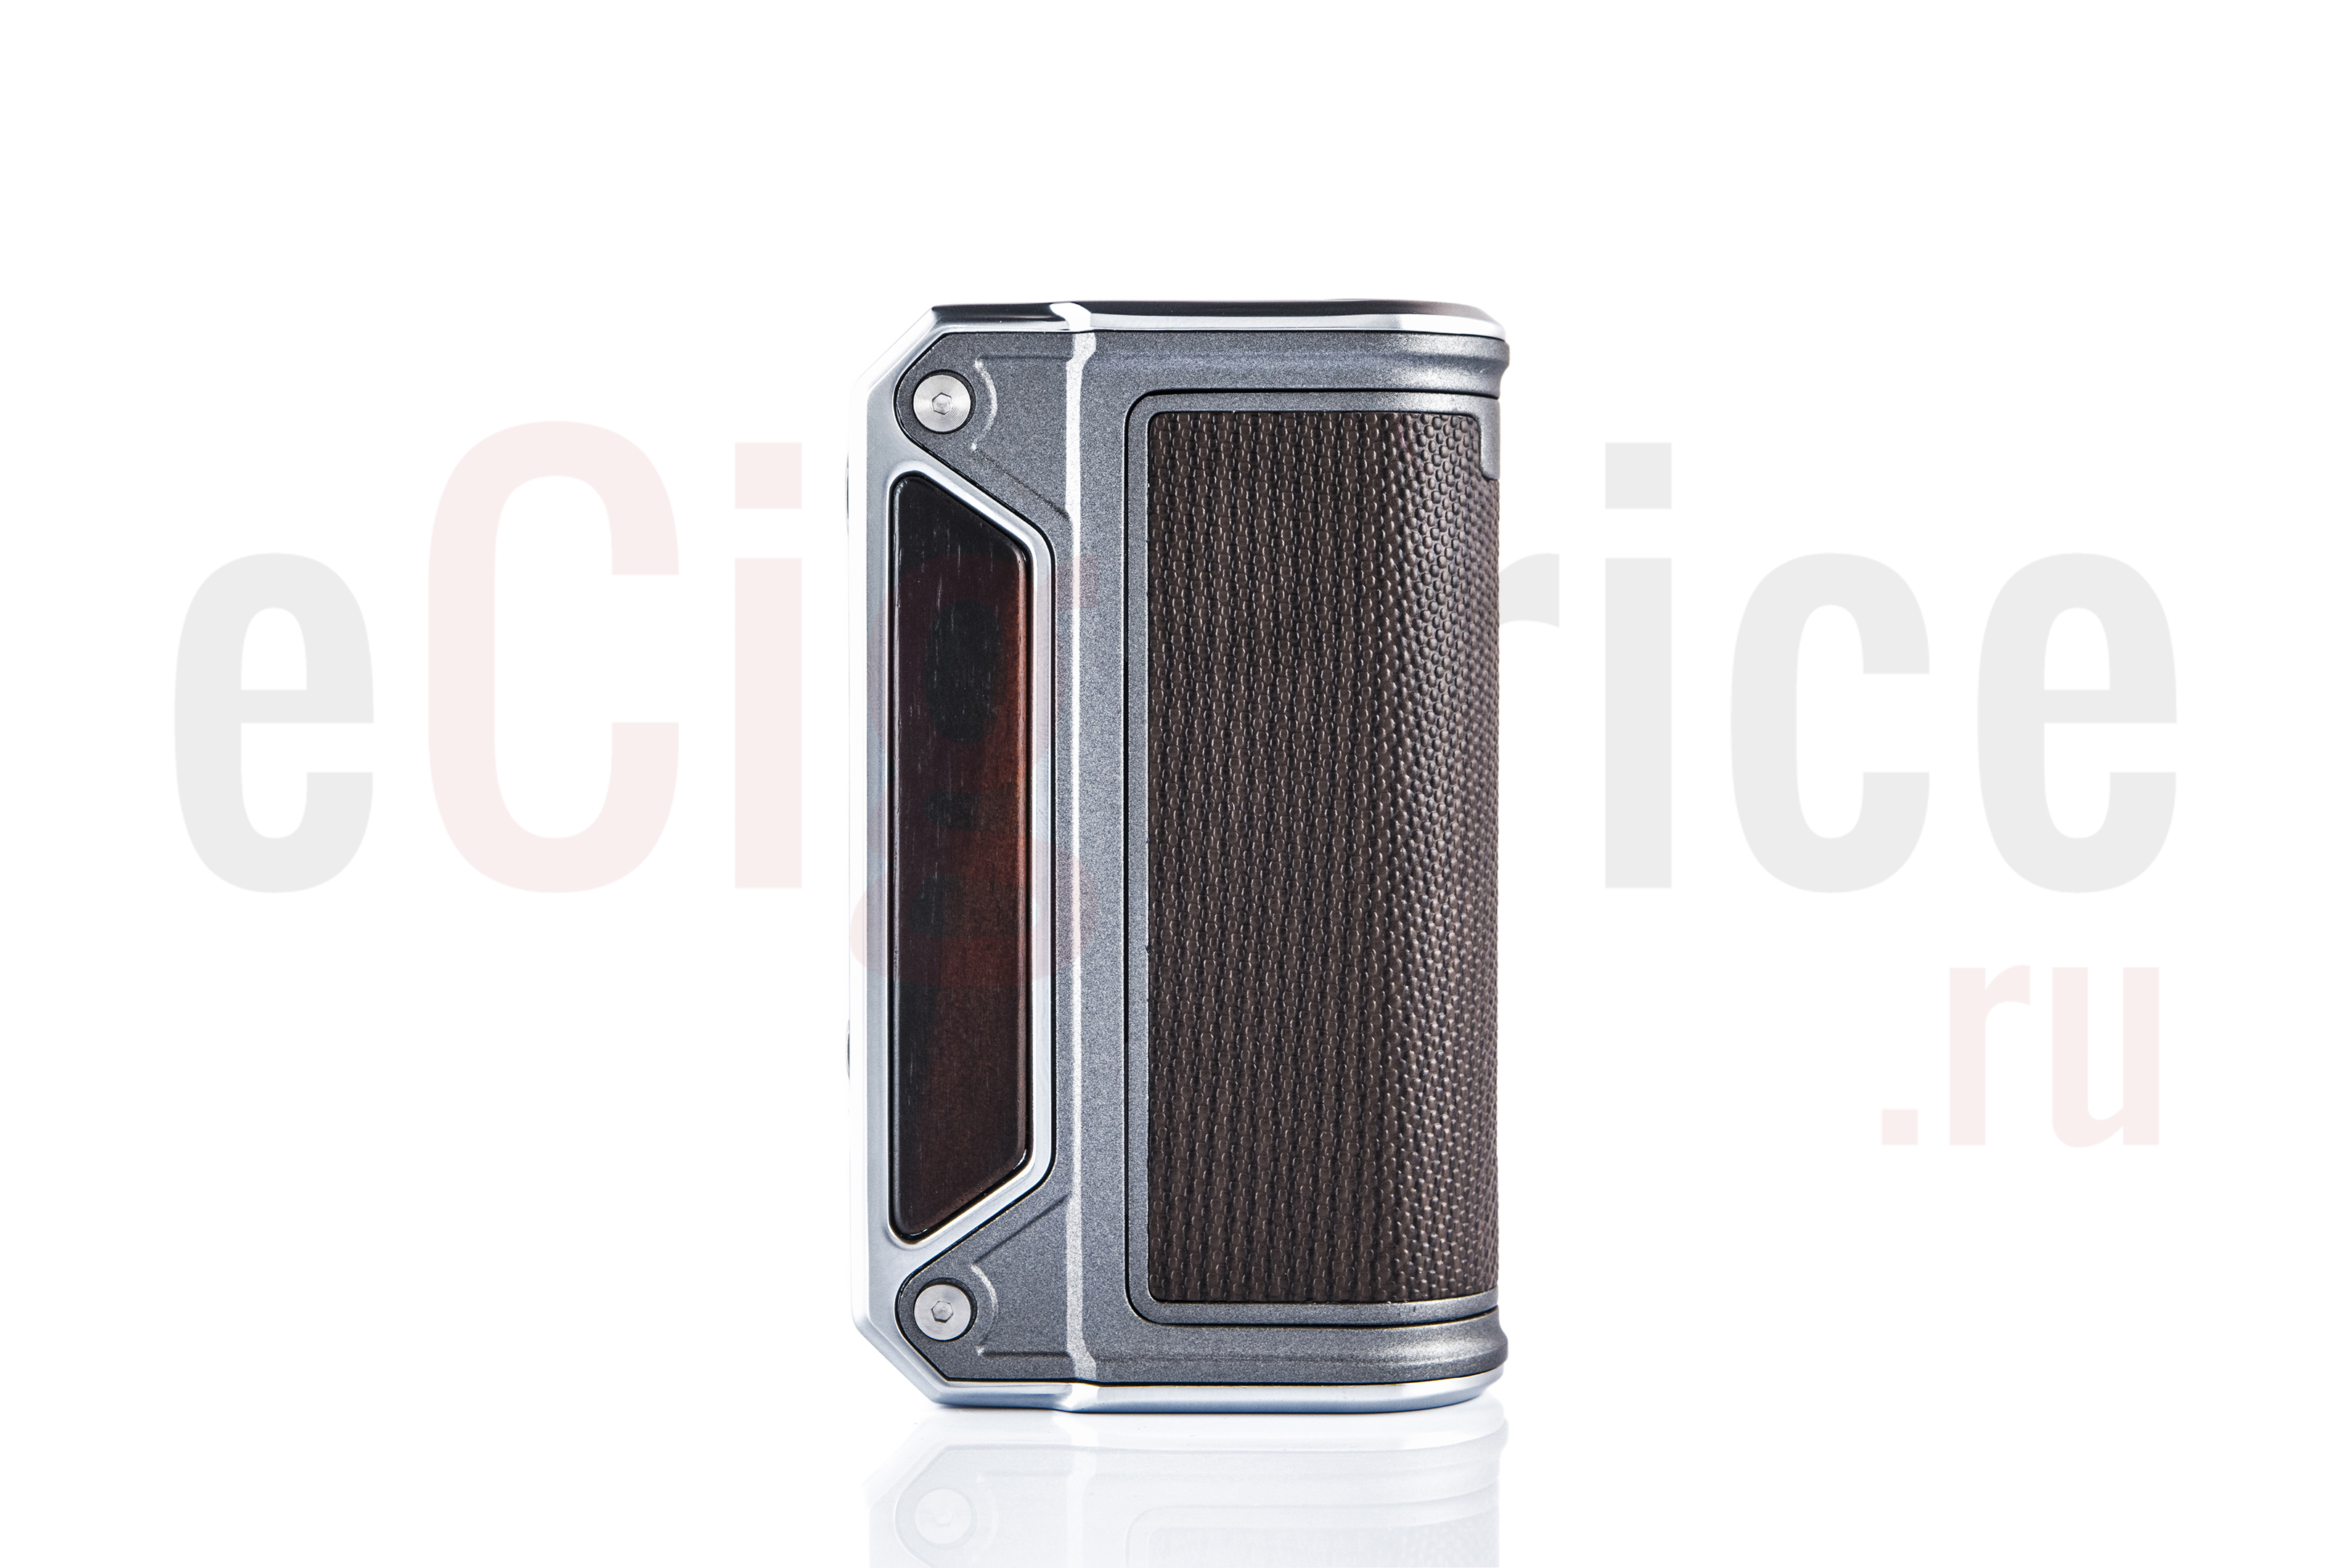 Therion DNA75 - силуэт